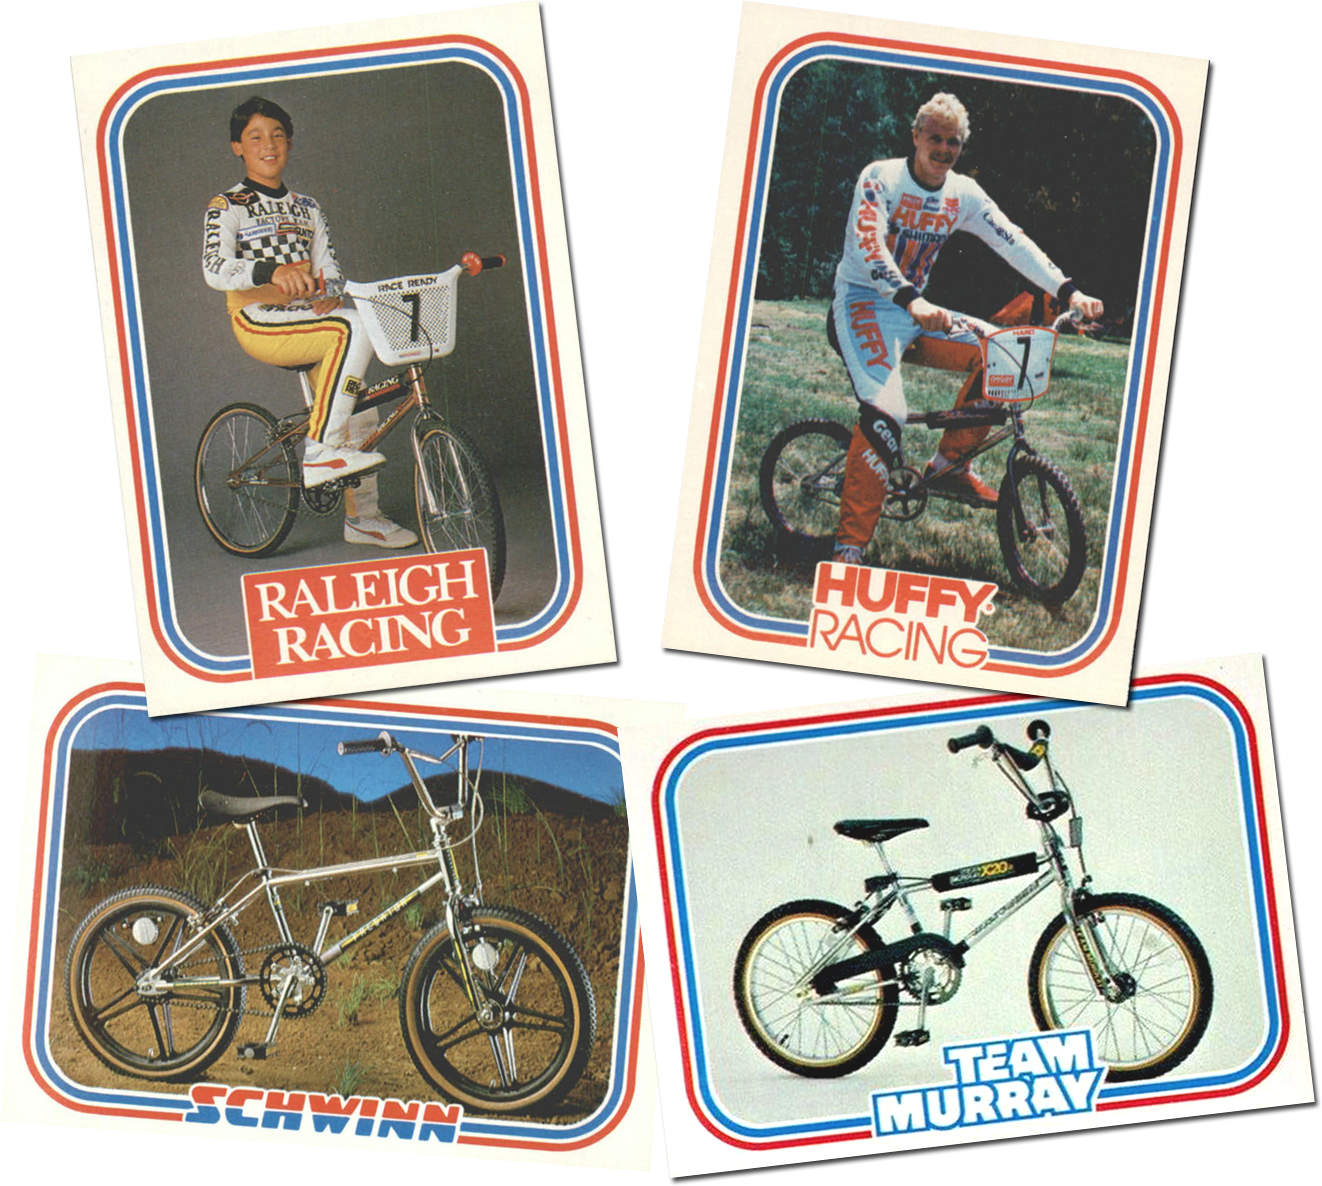 http://uploads.bmxmuseum.com/user-images/152/huffy5a0dc93da2.jpg